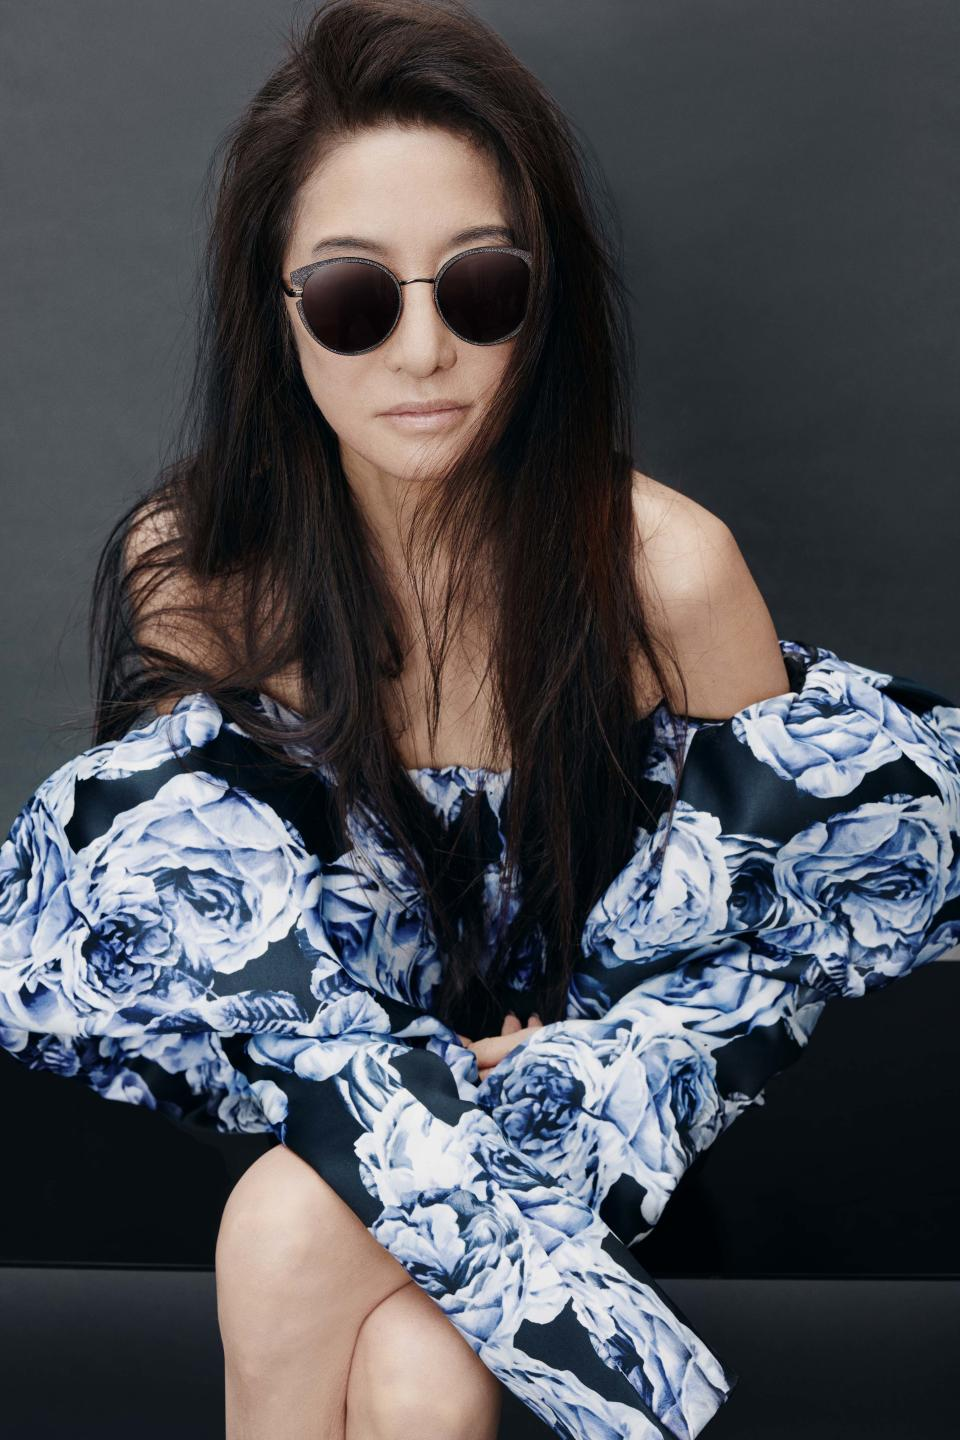 Vera Wang has made her modelling debut at the age of 71 for her very own eyewear range. Photo: supplied.